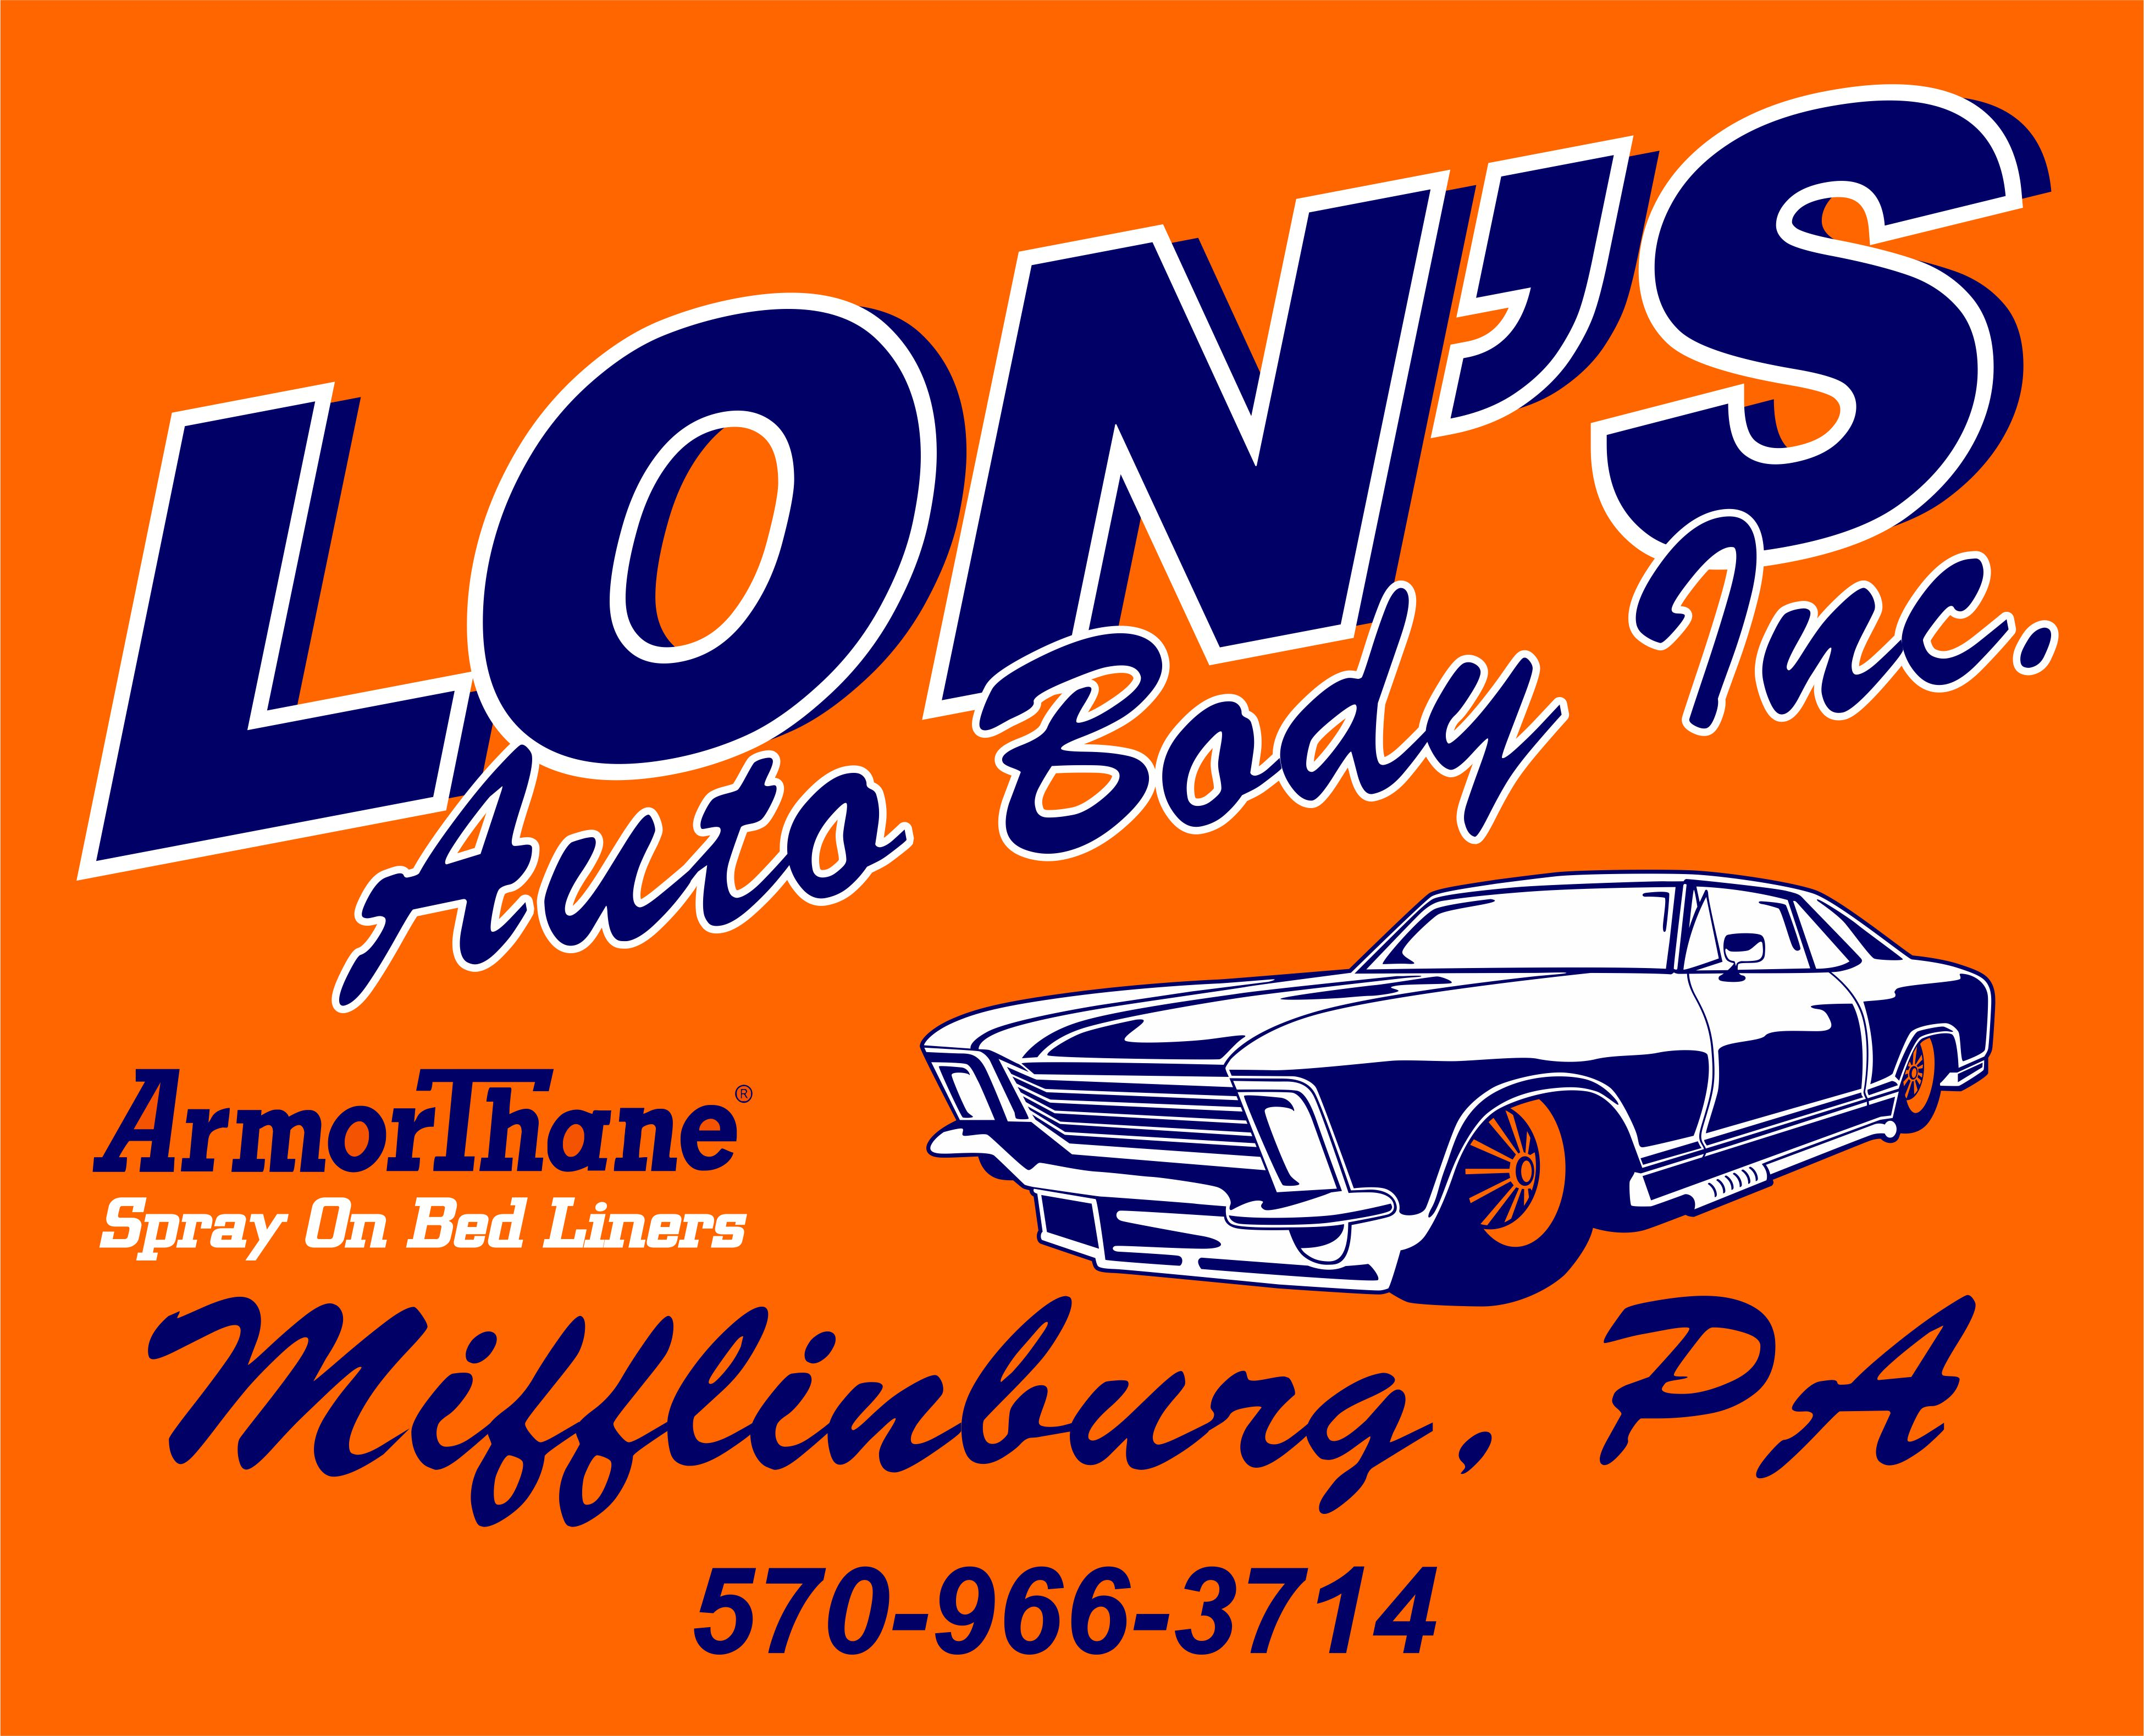 Lon's Auto Body Inc., Mifflinburg PA